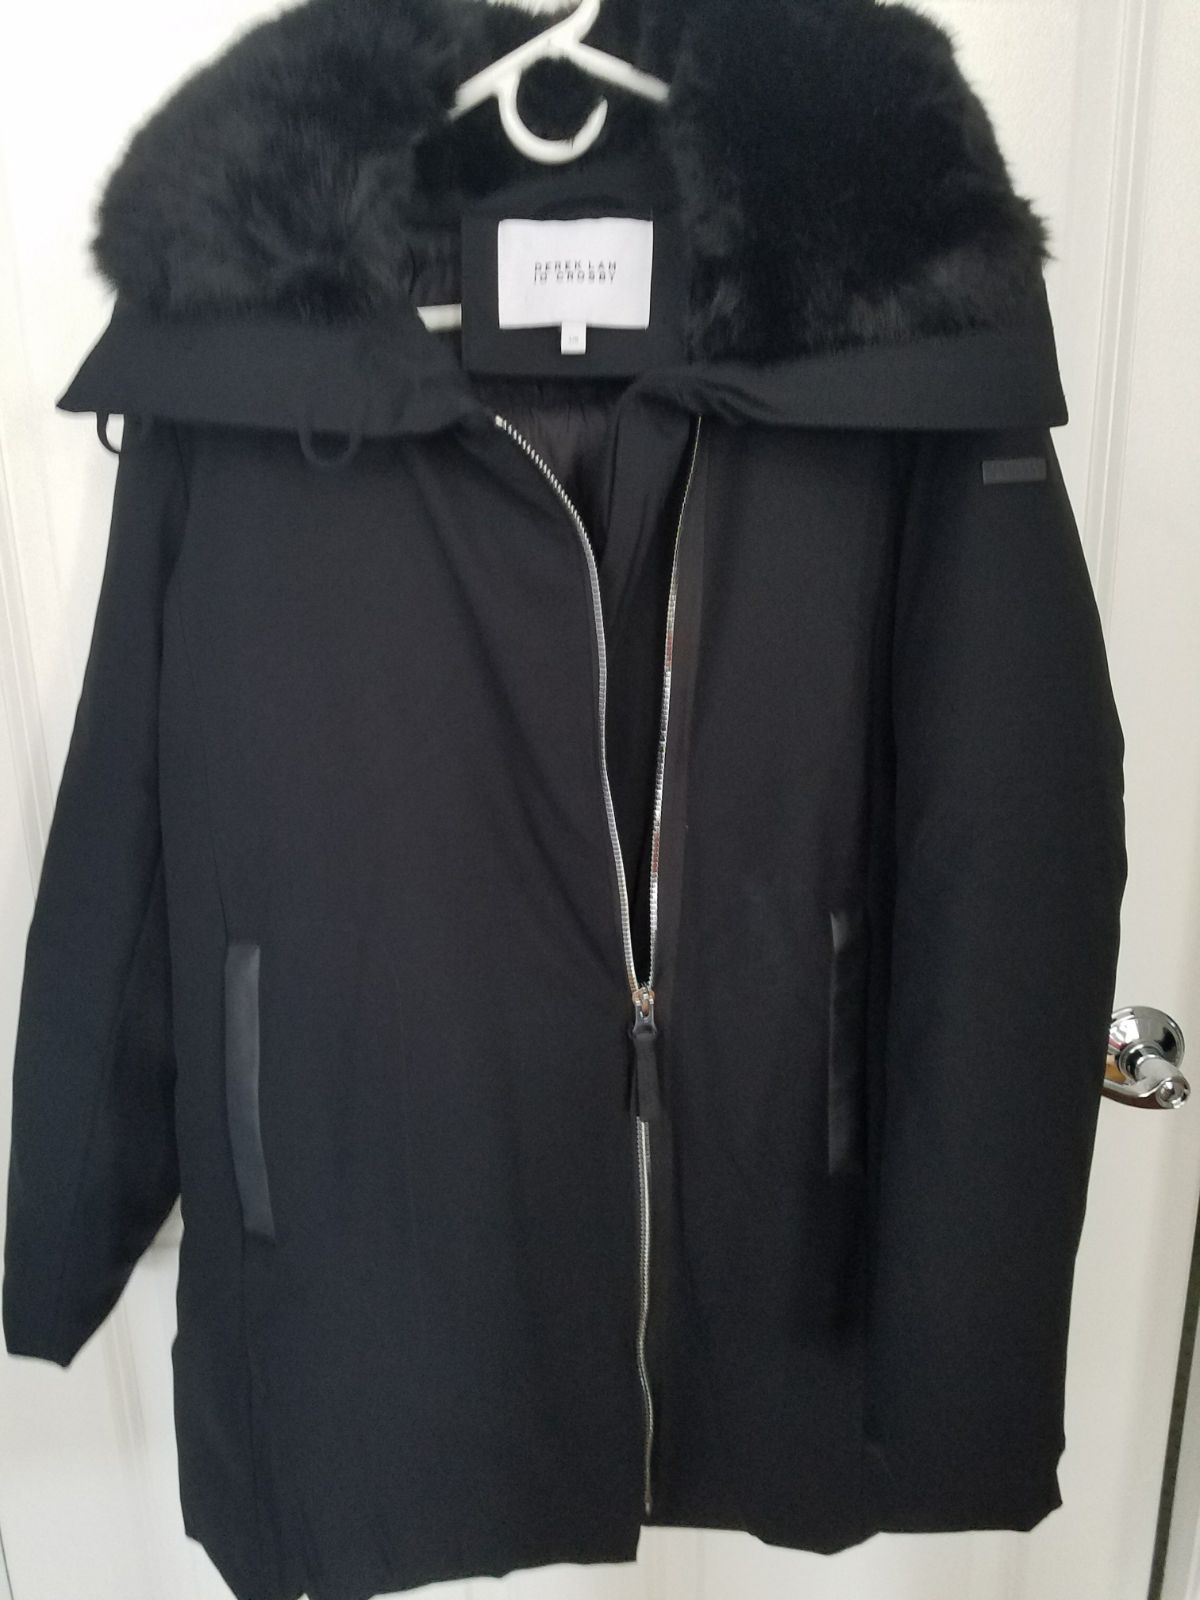 Derek Lam Woman's Winter Coat. BEAUTIFUL